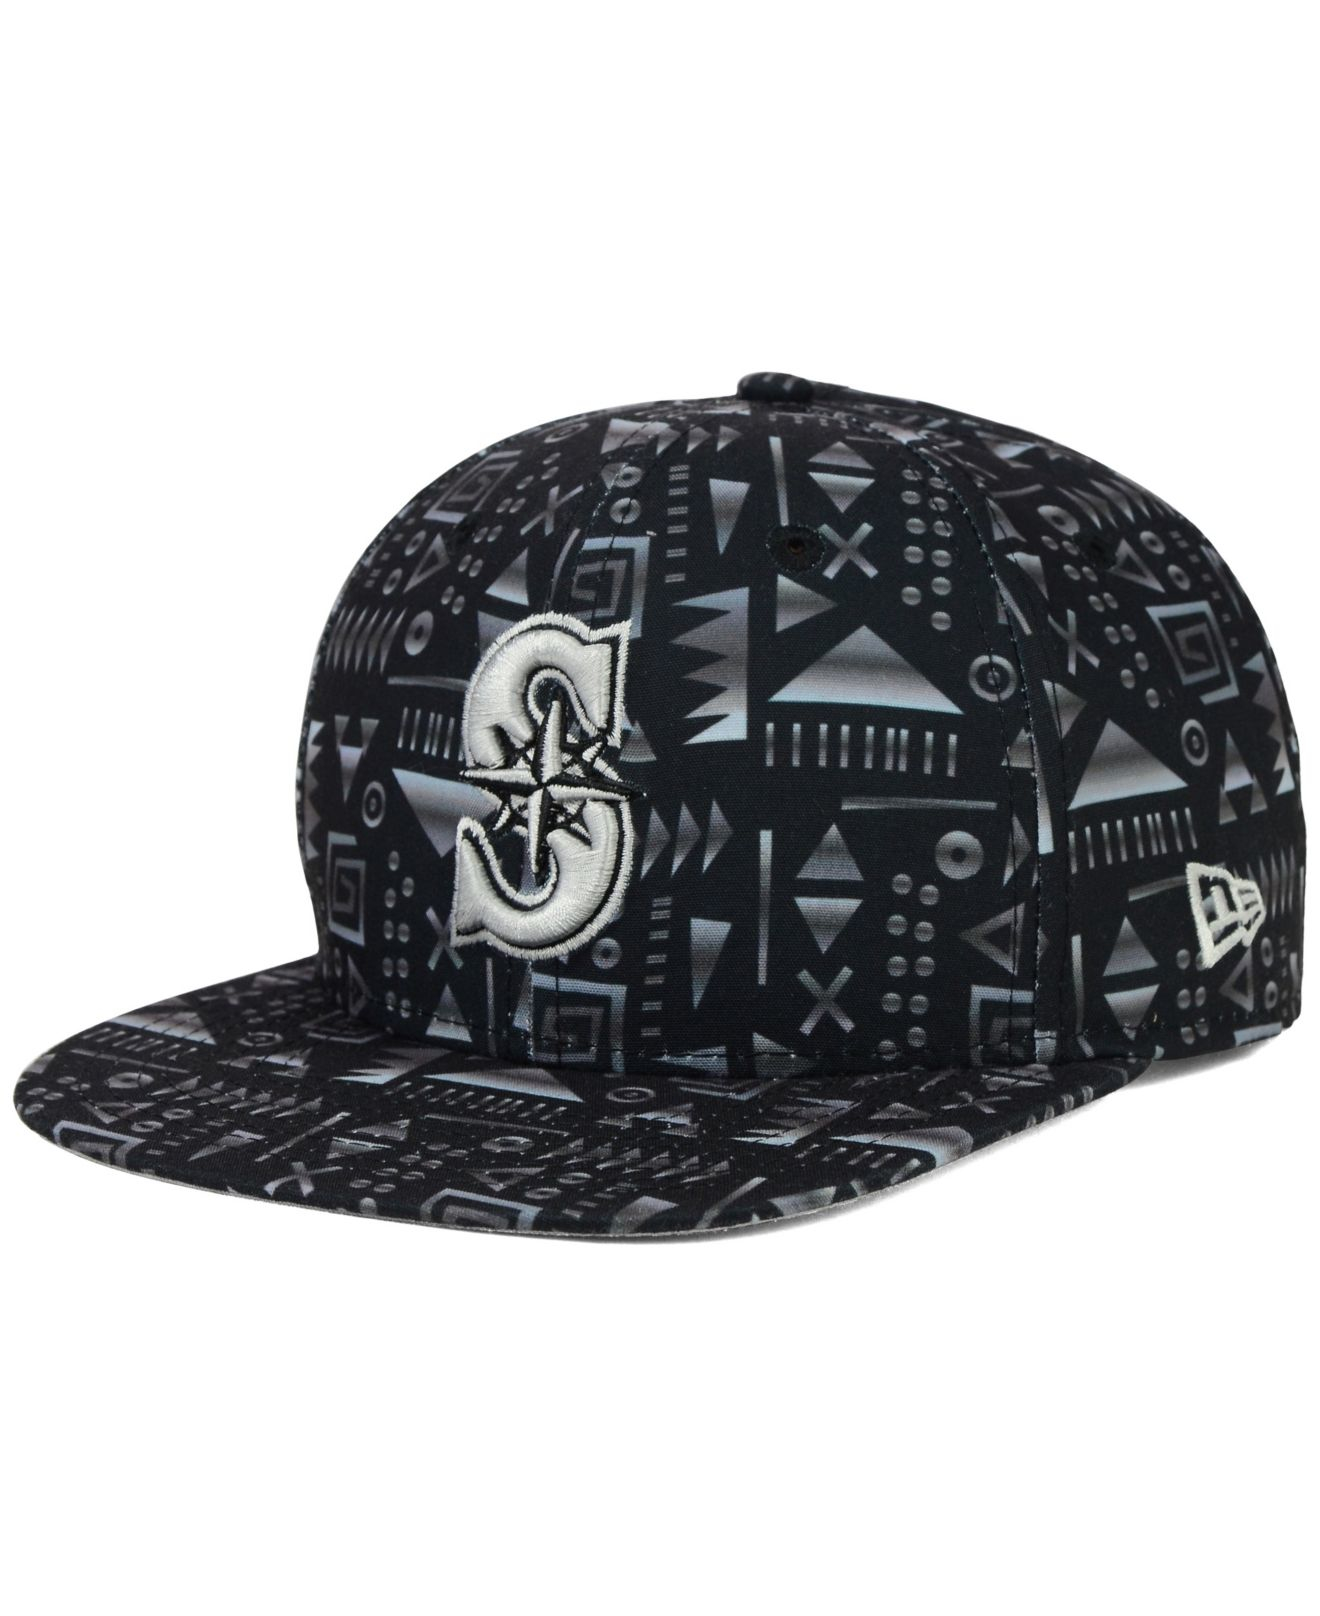 Lyst - KTZ Seattle Mariners Geo 9Fifty Snapback Cap in Black for Men 34386f00917c